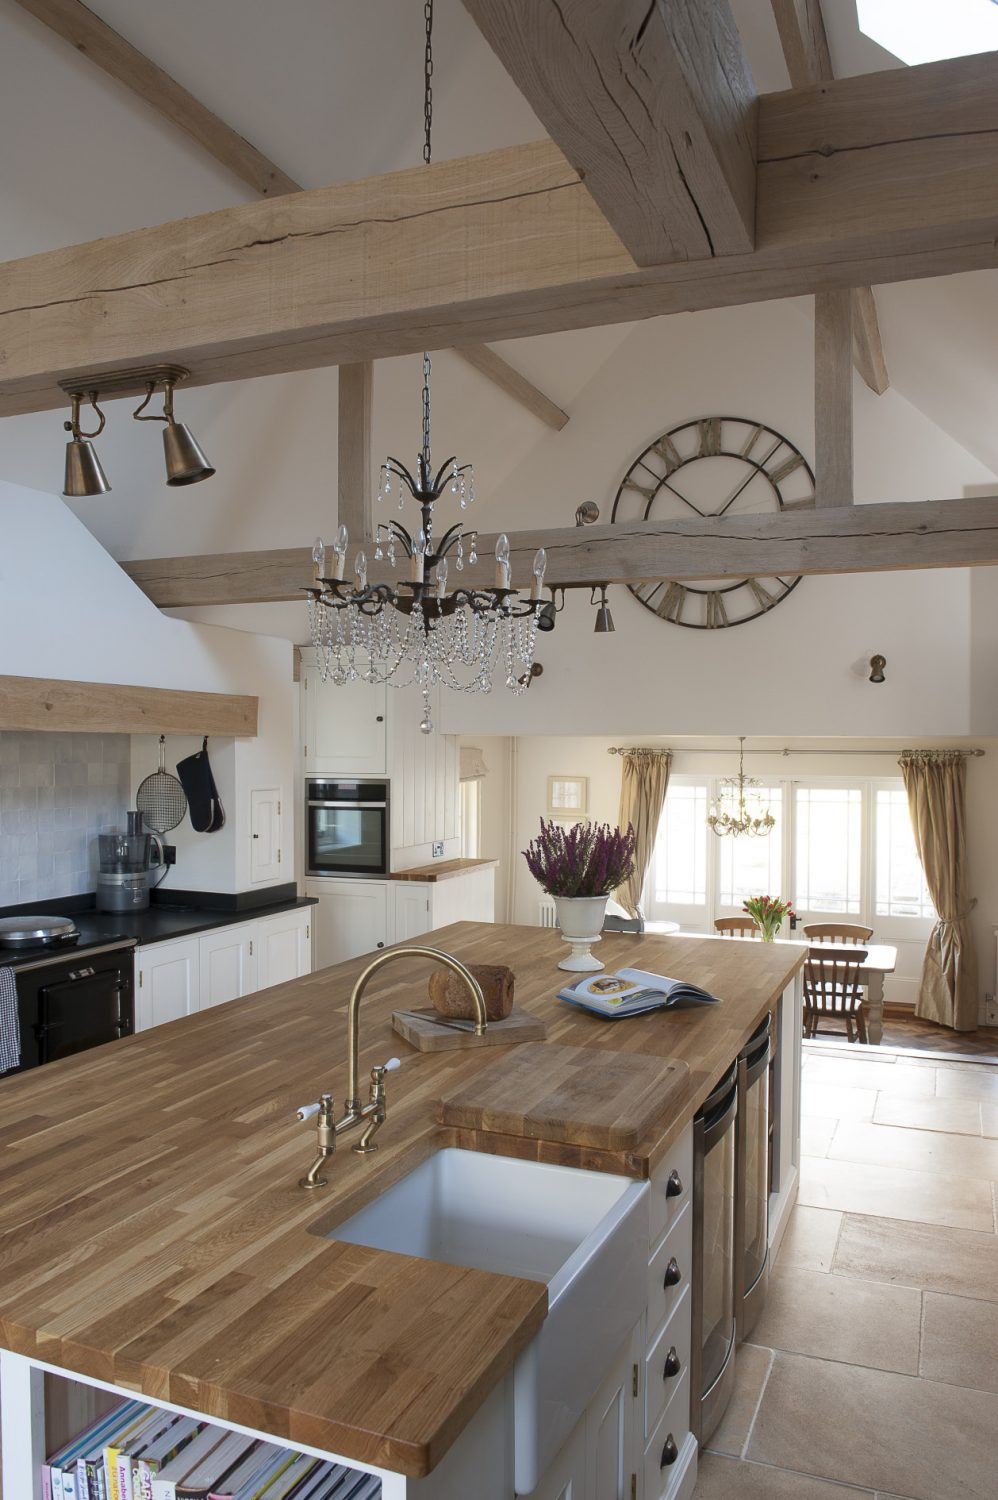 The kitchen/breakfast room was extended to create a truly huge vaulted, beamed space